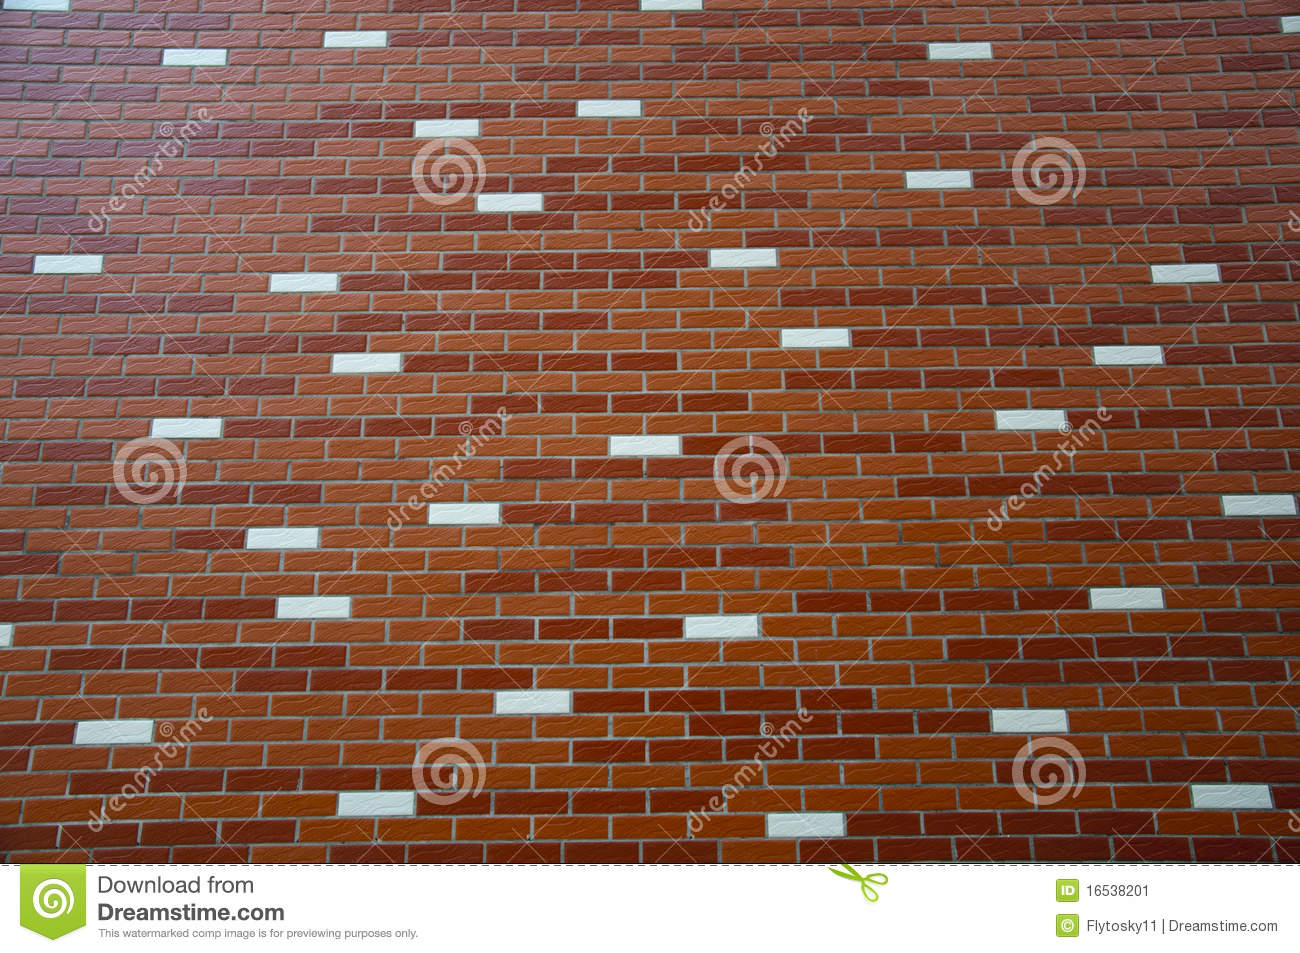 Image Result For Decorative Garden Wall Bricks